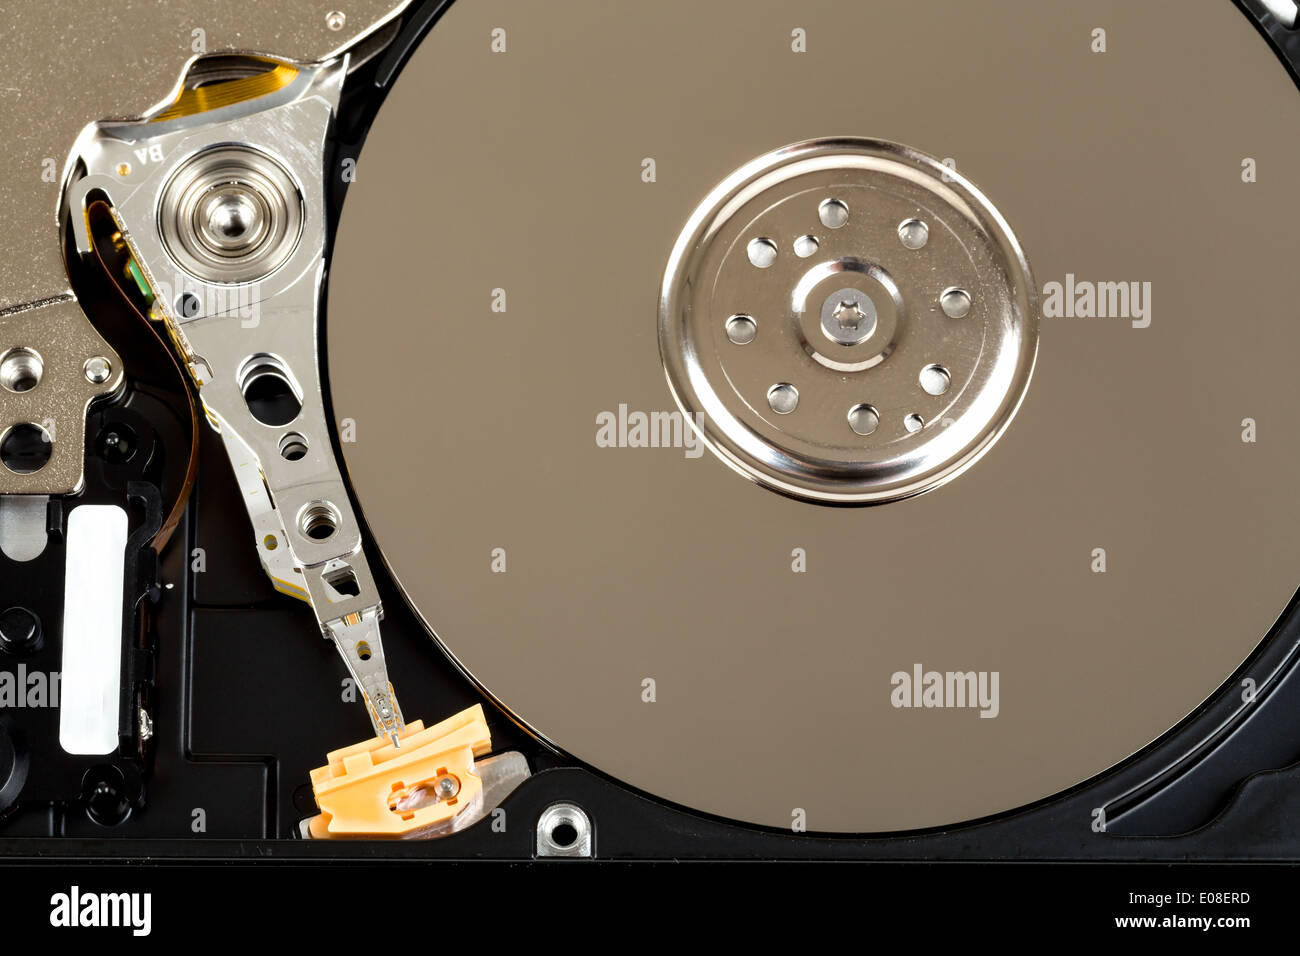 detail of uncovered 2 5 inch notebook hard drive stock photo